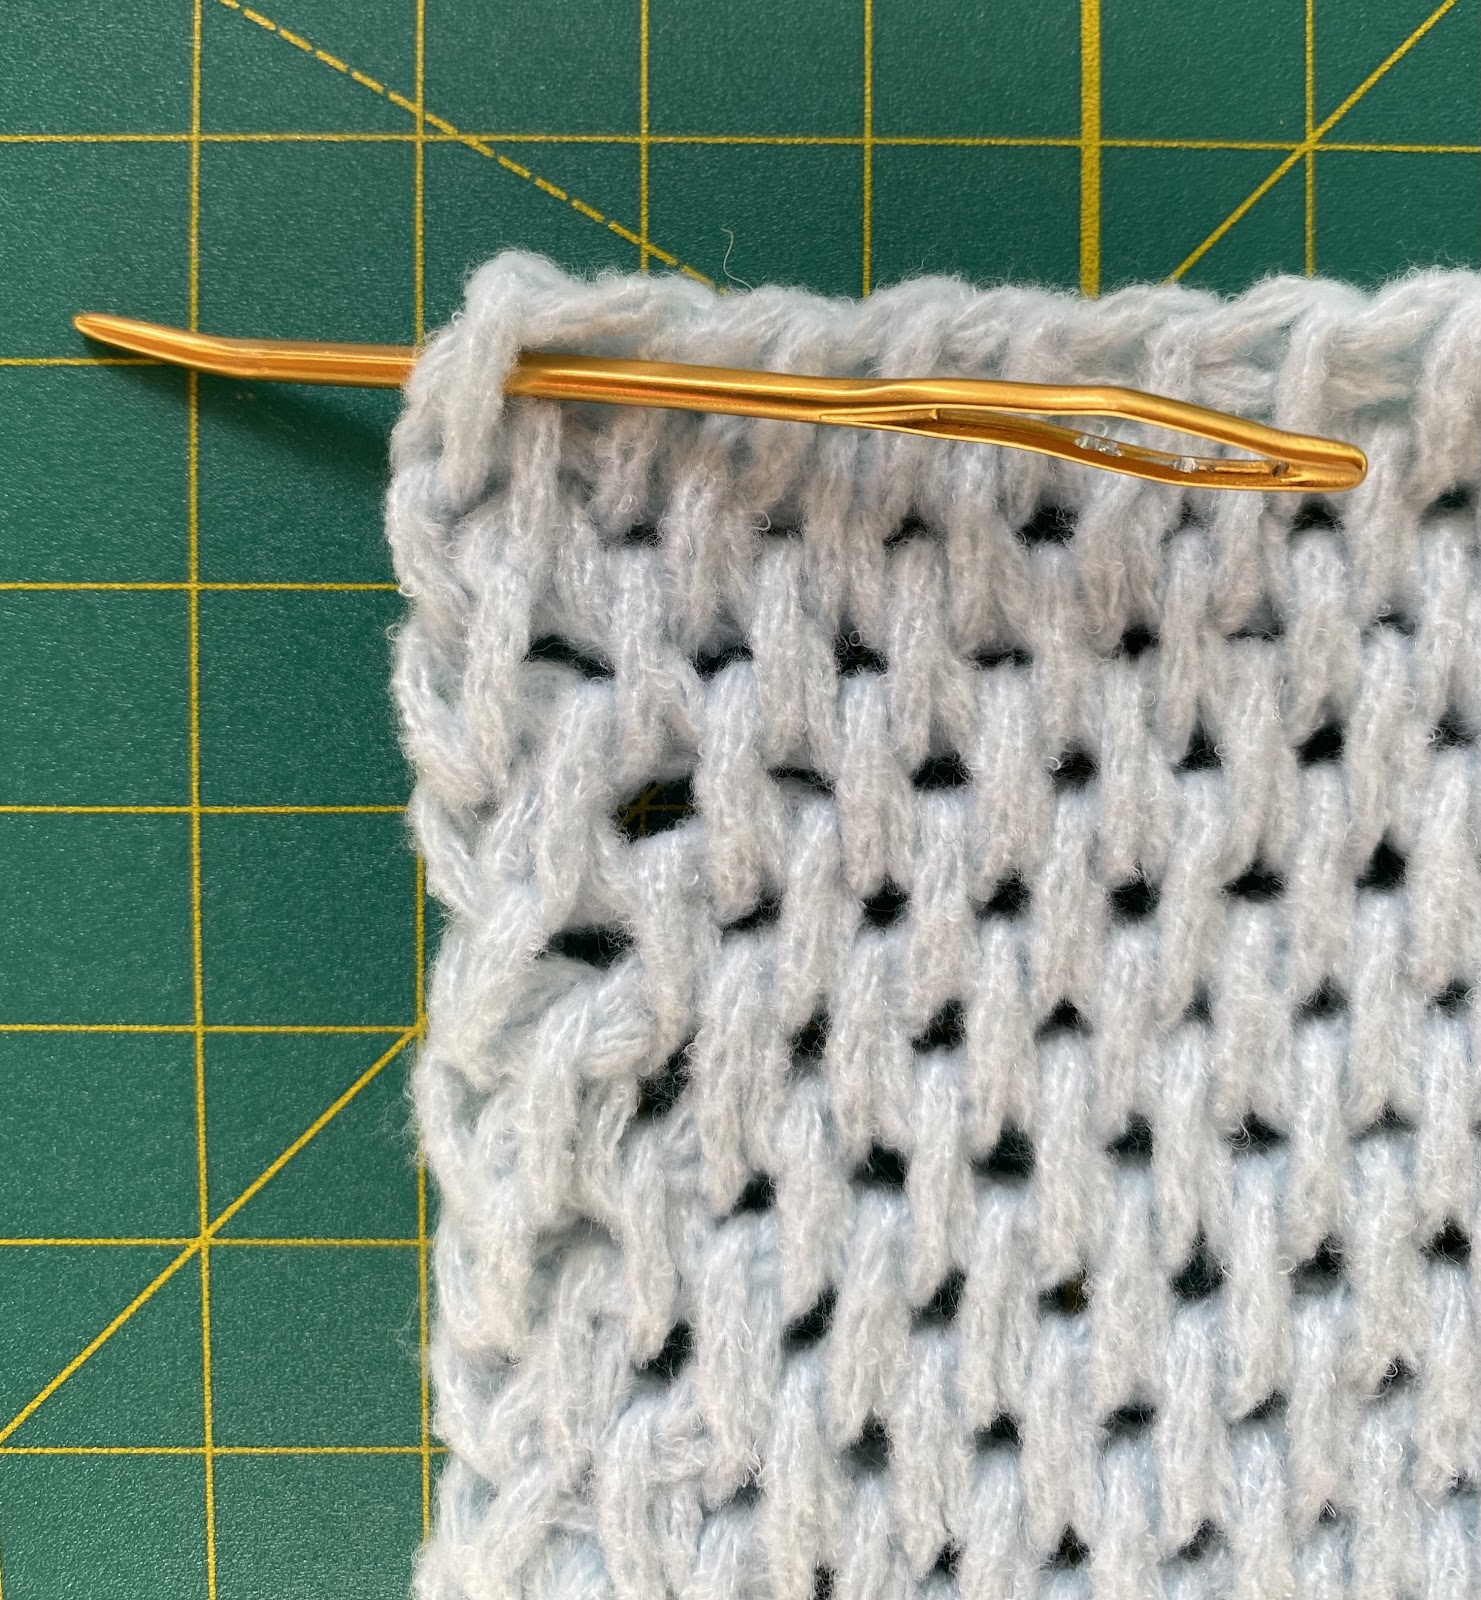 How to Crochet the easy Tunisian Full Stitch Blanket with Bobbles Free Crochet Pattern. Using Bernat Baby Blanket Yarn and a size 12mm tunisian crochet hook.